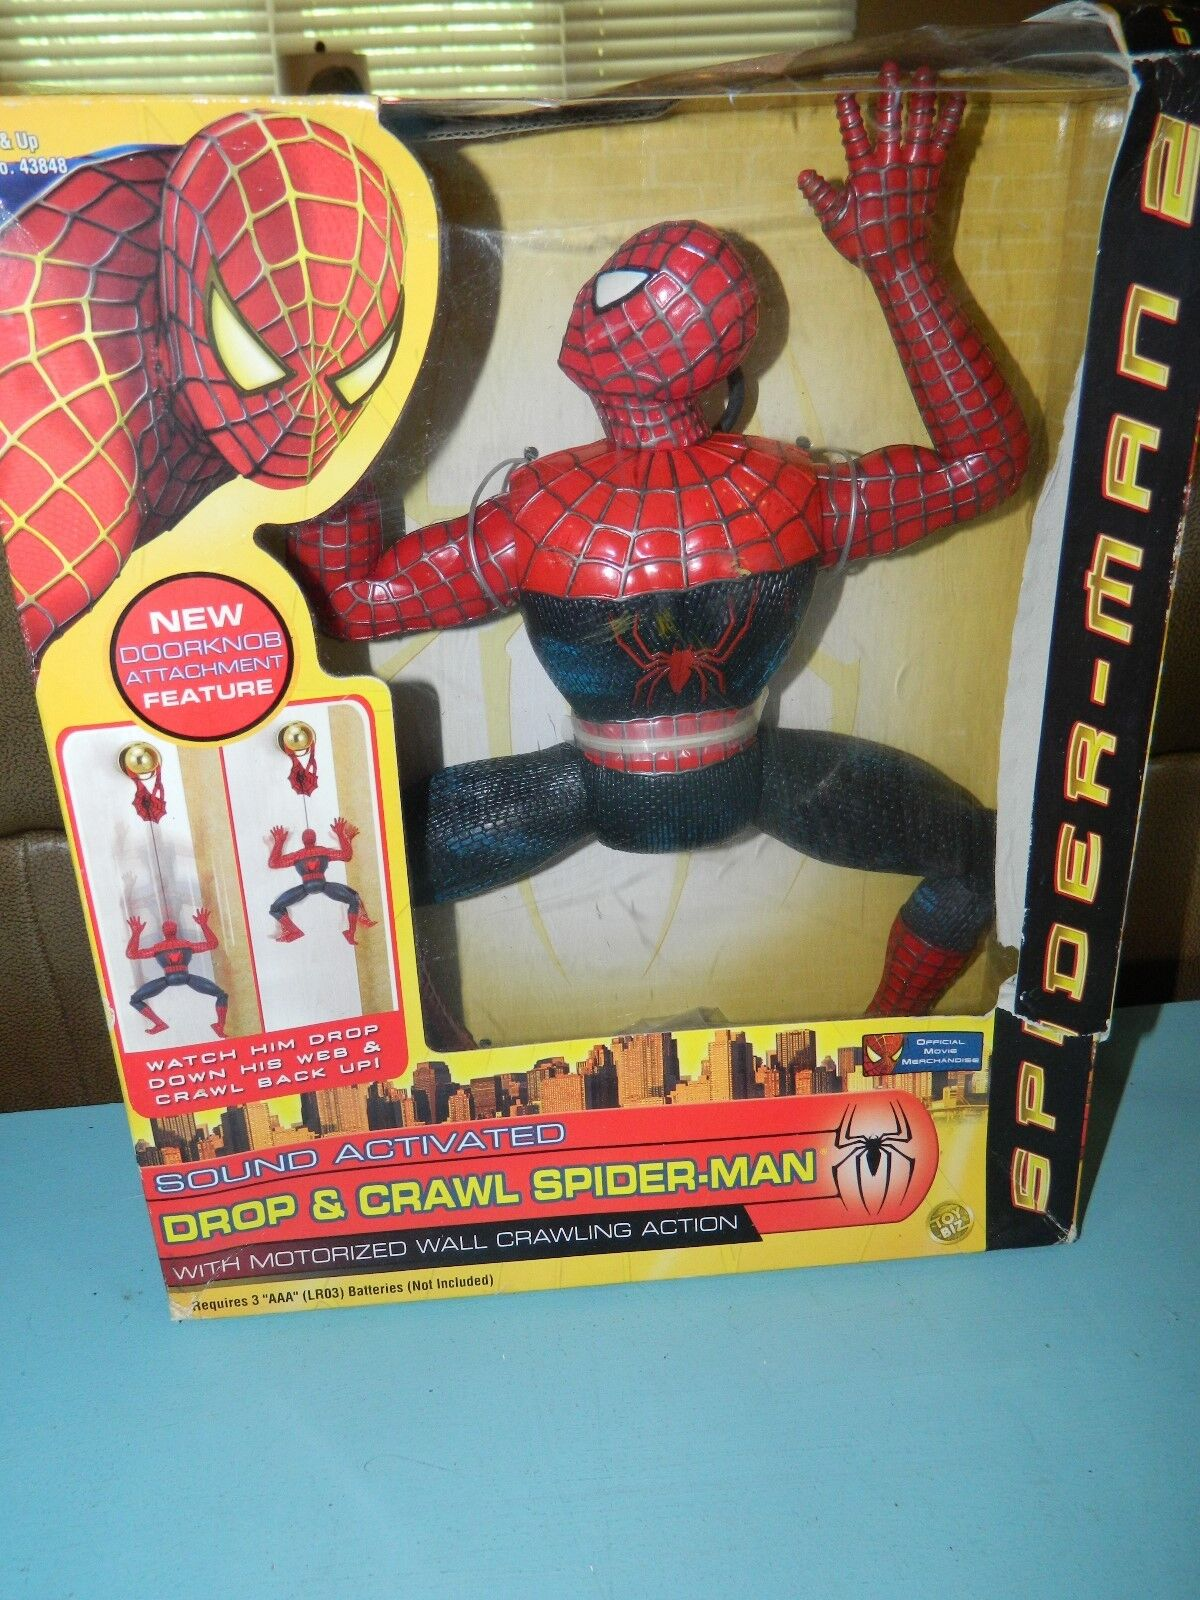 Marvel Spider-Man 2004 Drop & Crawl Spider-Man